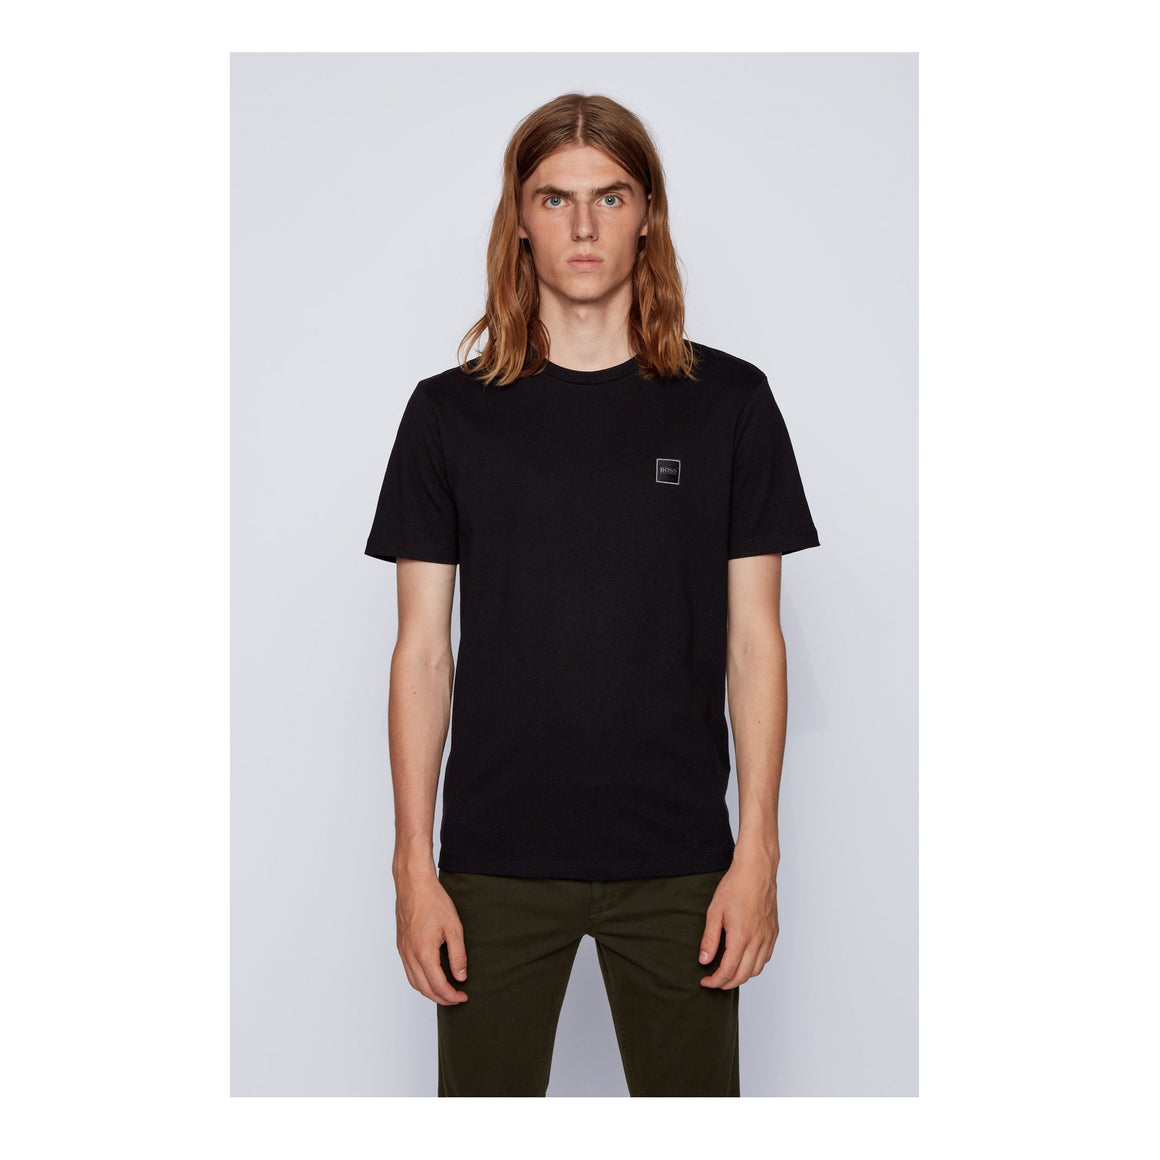 Plain Tee Shirt for Men in Black